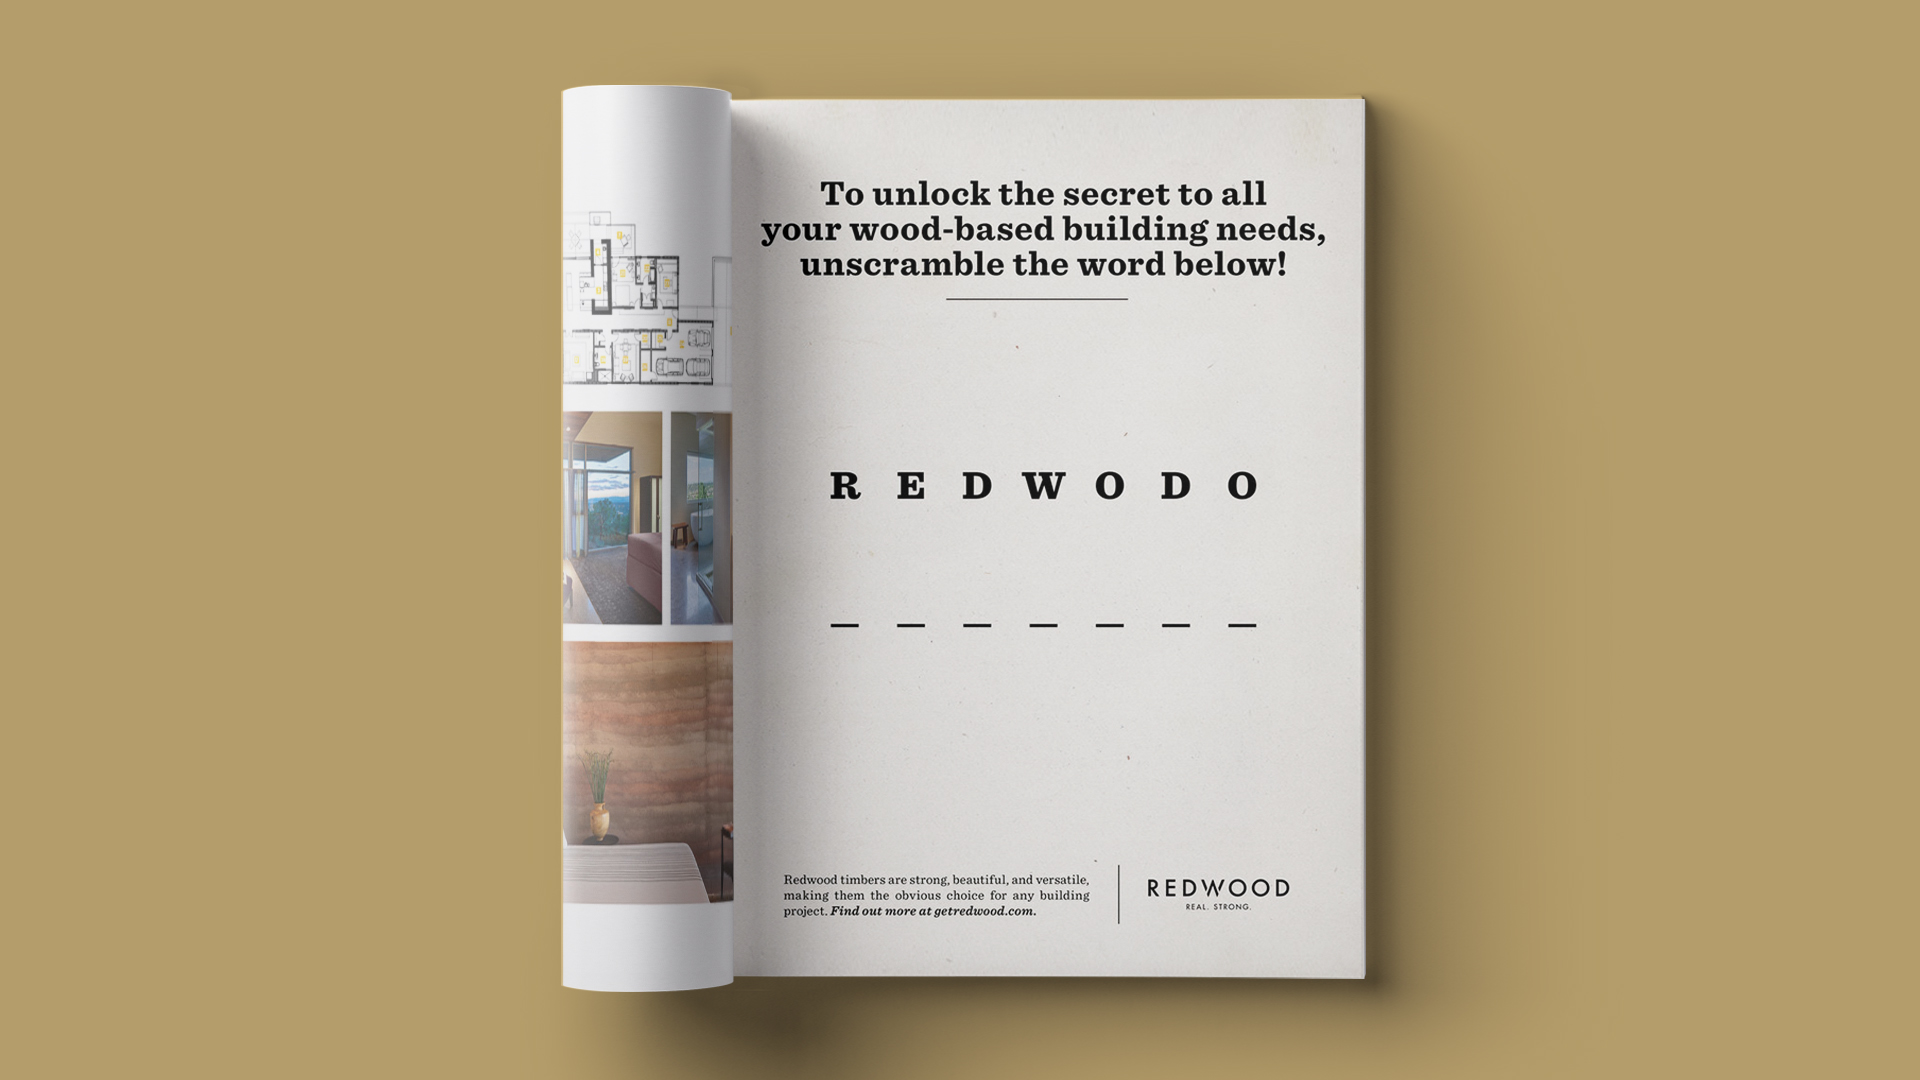 Redwood - Obvious Choice